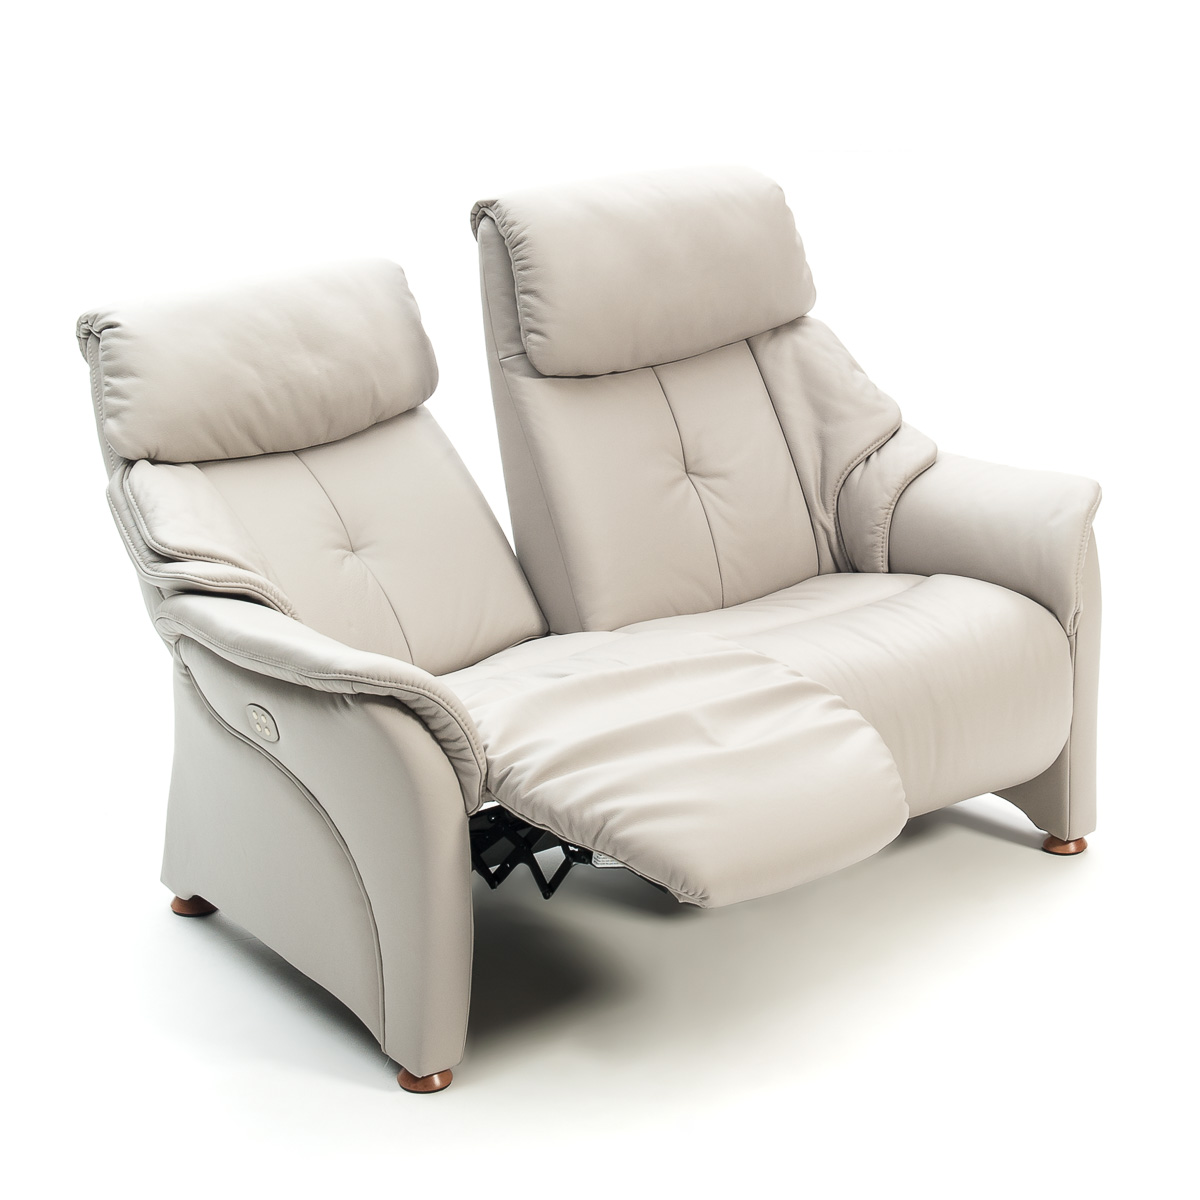 Himolla Chester 2 Seater Recliner Sofa